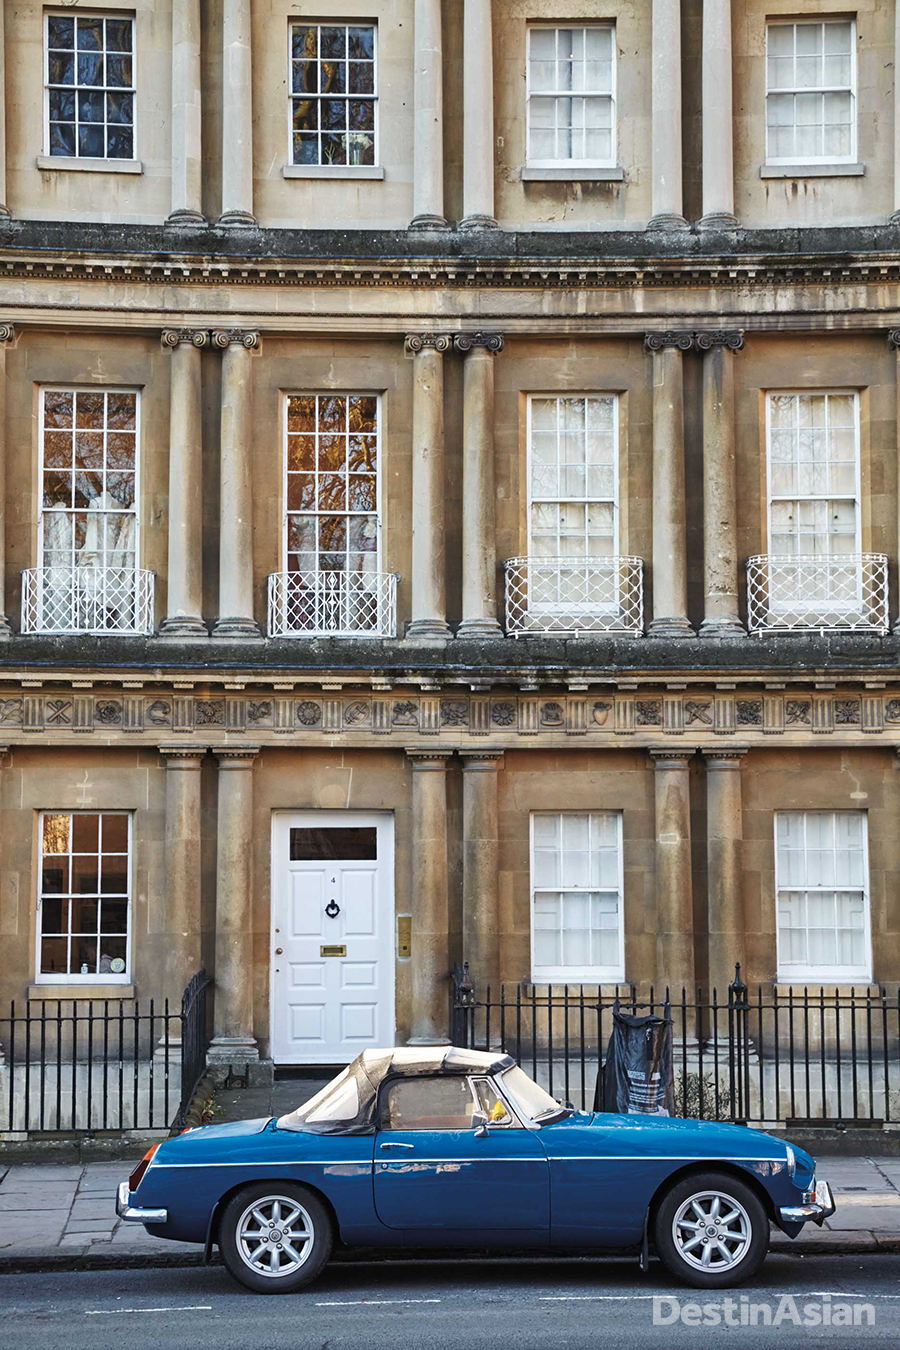 The ring of townhouses known as the Circus is one of Bath's finest examples of Georgian architecture,